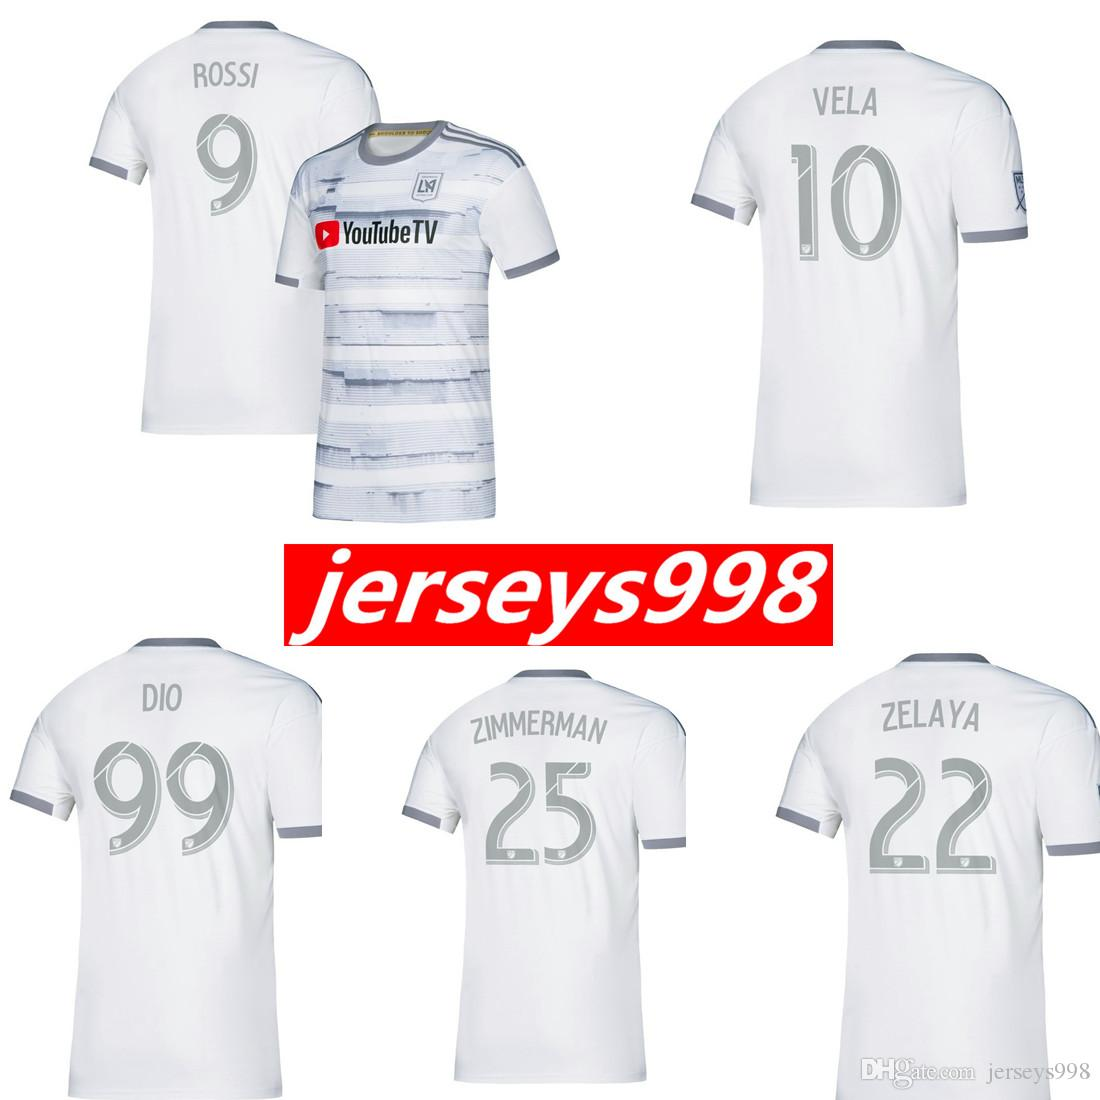 low priced d009d b6e7d NEW 2019 LAFC Carlos Vela Soccer Jerseys 19/20 Home ZELAYA GABER ROSSI  CIMAN ZIMMERMAN Black Parley Primary WHITE Football Shirts